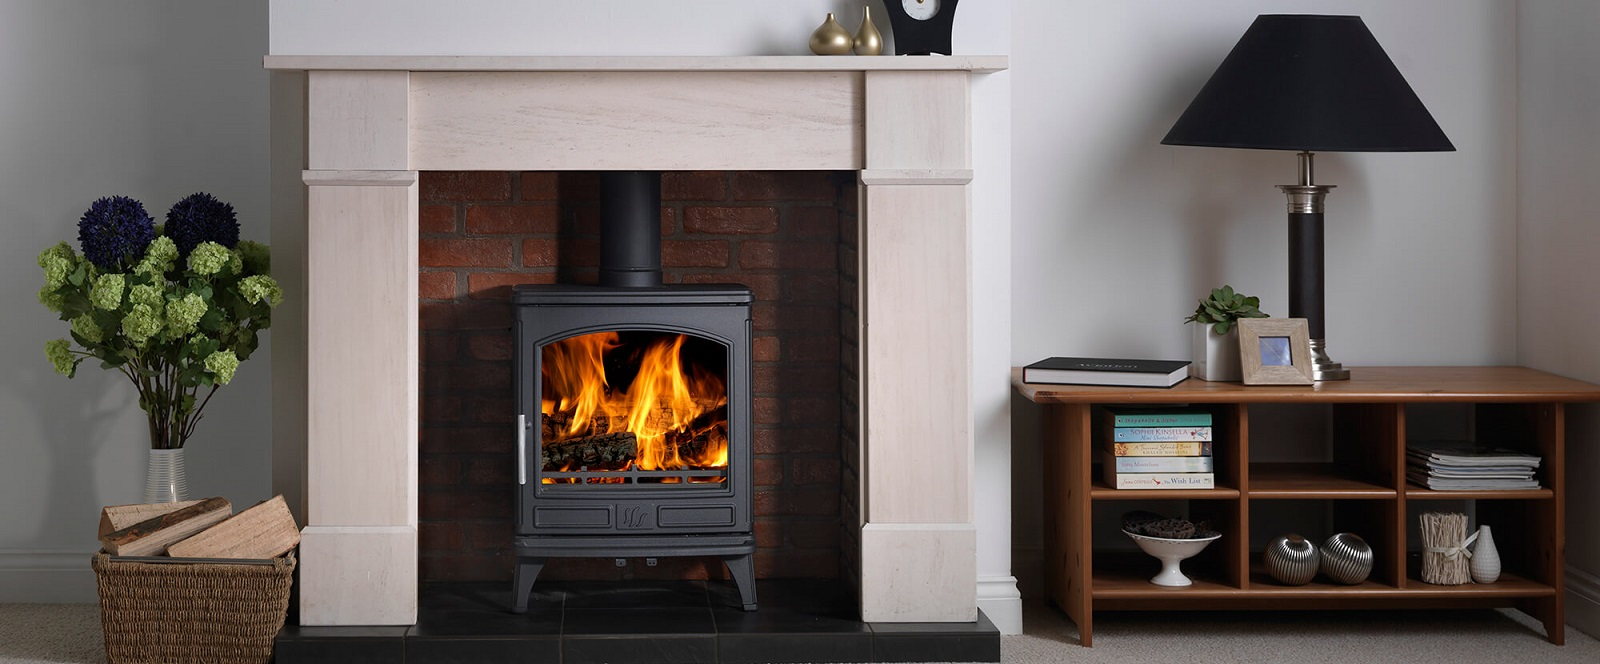 Firecrest Installations & Services Wood Burning Stove Installation on the Isle of Wight